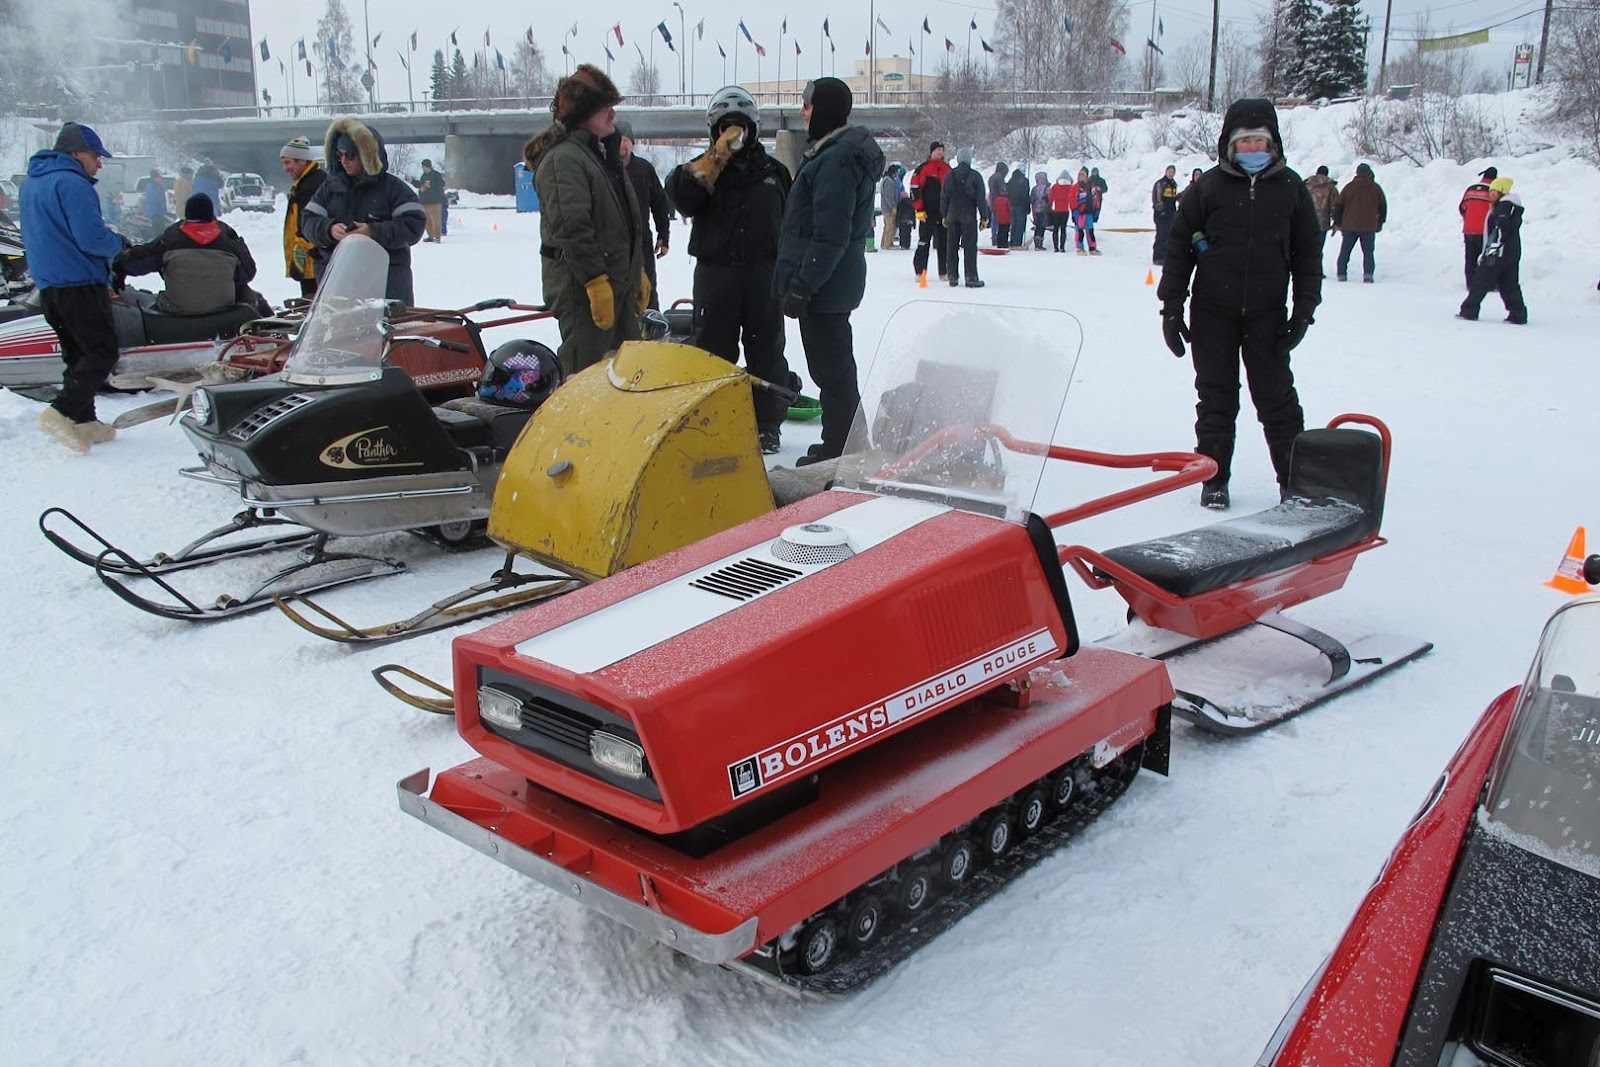 Antique snowmobiles iron dog race take center stage for Vintage sleds